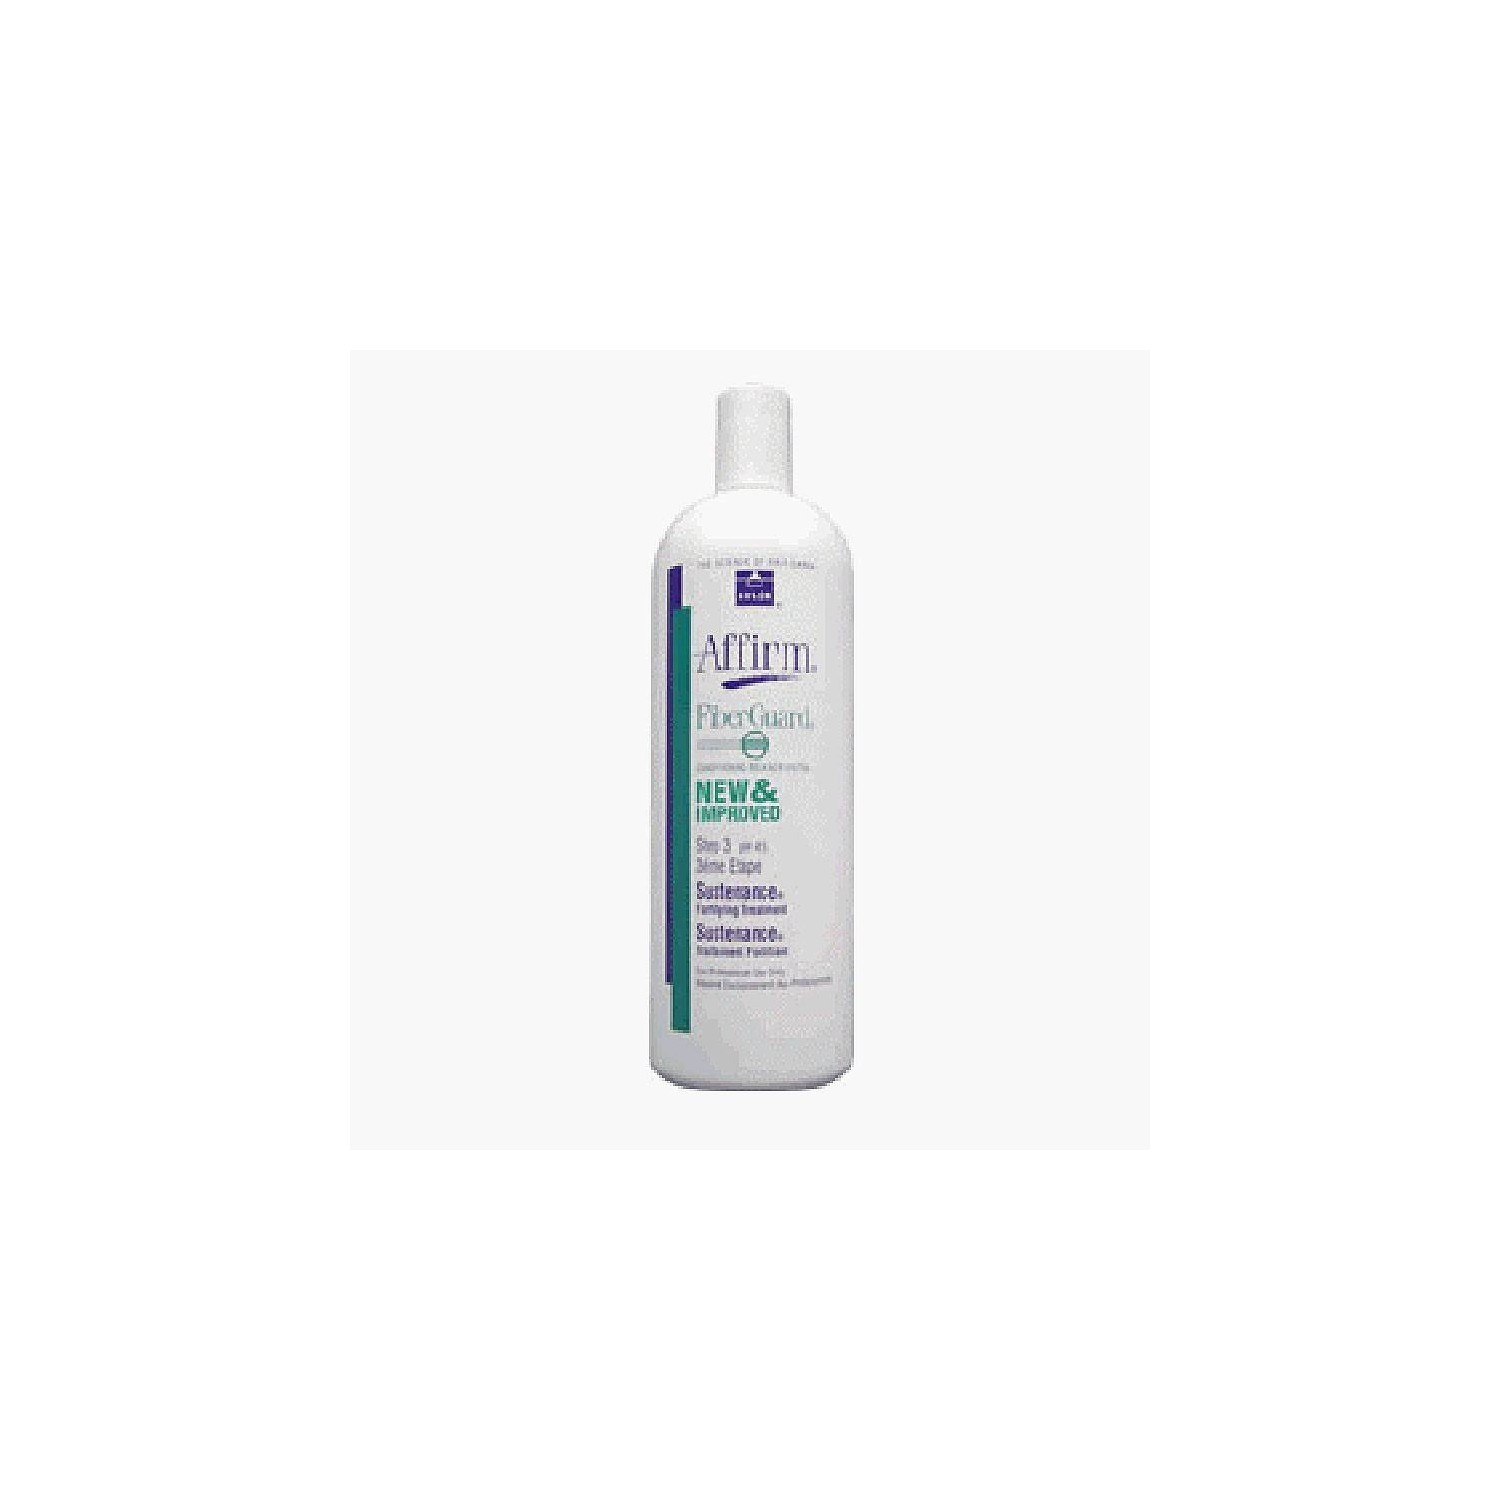 Avlon Affirm Fiberguard Sustenance Treatment 950 Ml